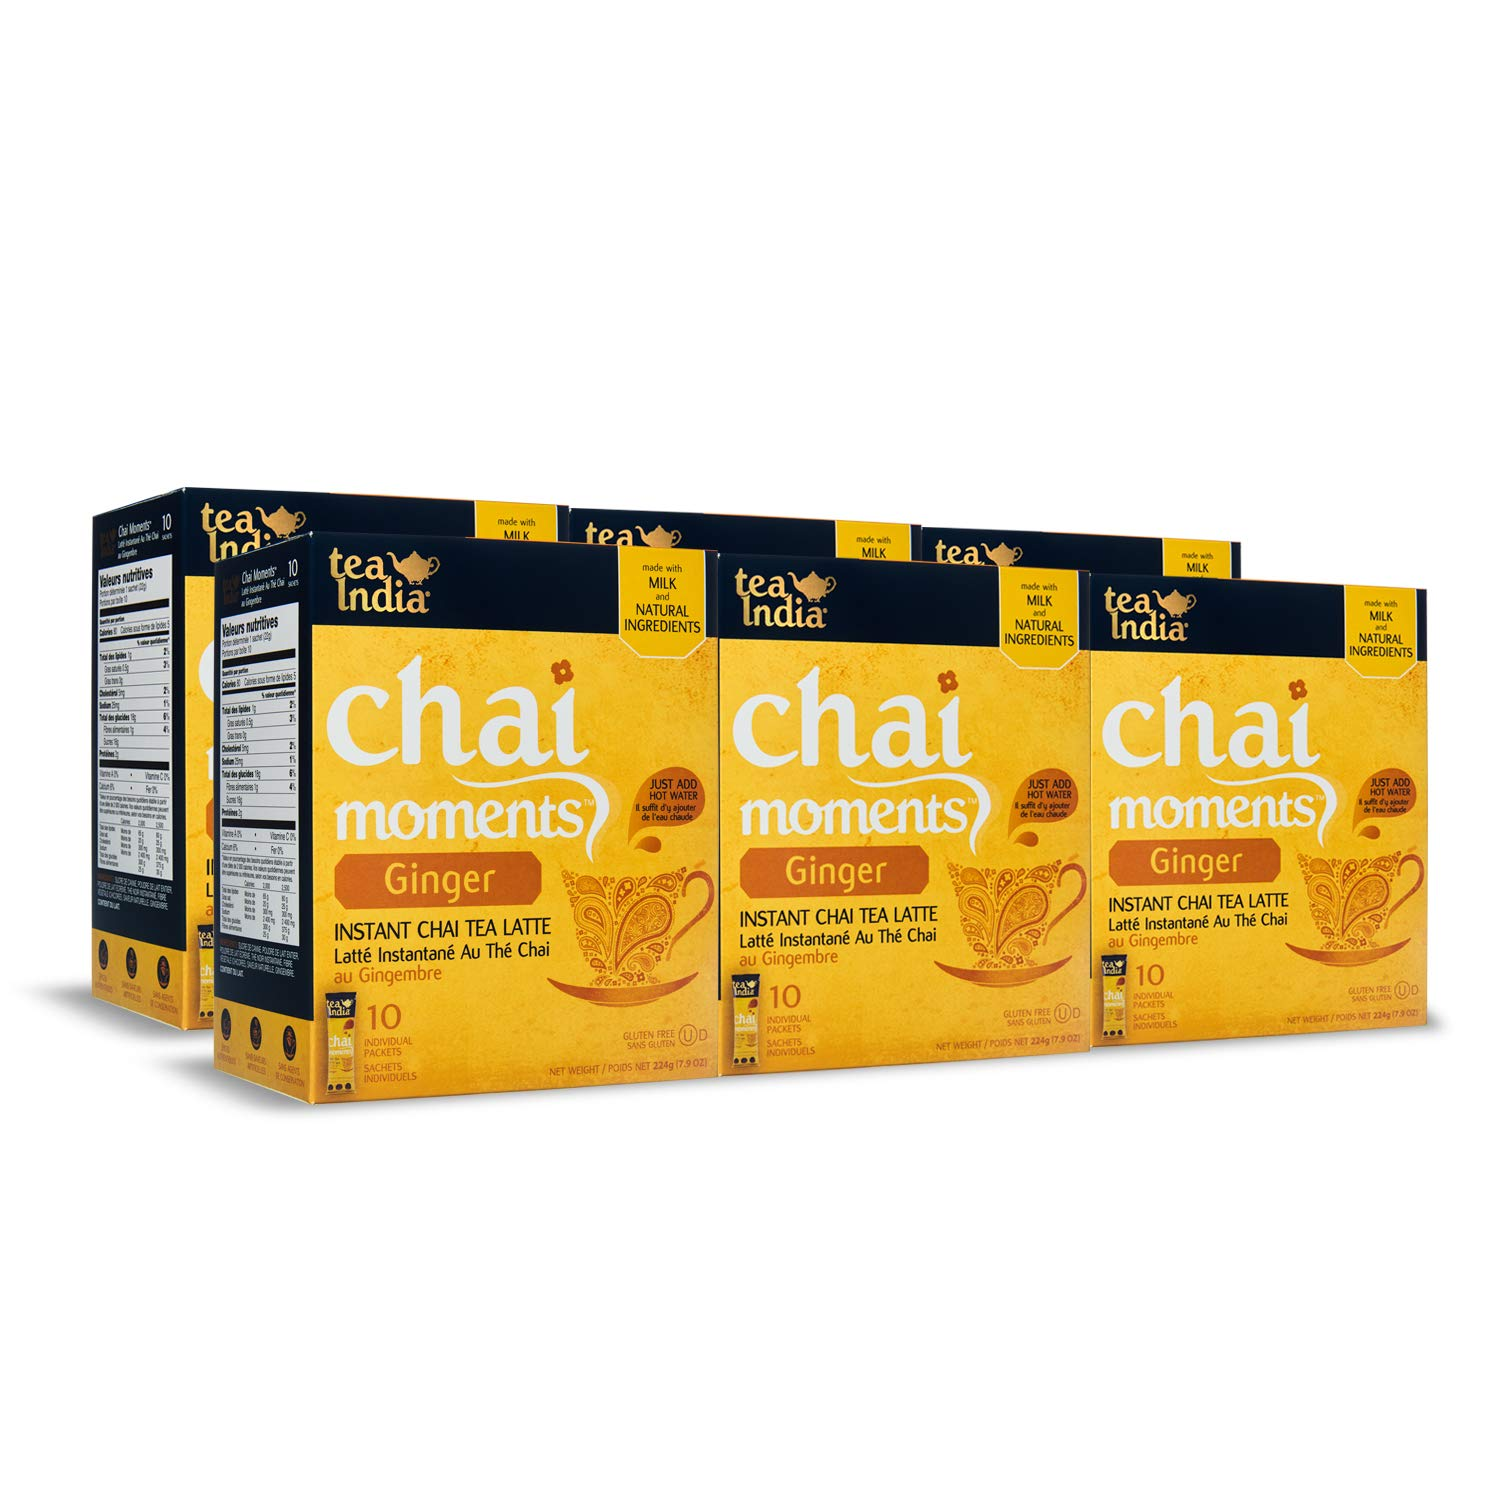 Tea India Chai Moments, Ginger, 10 Count (Pack of 6) by Tea India